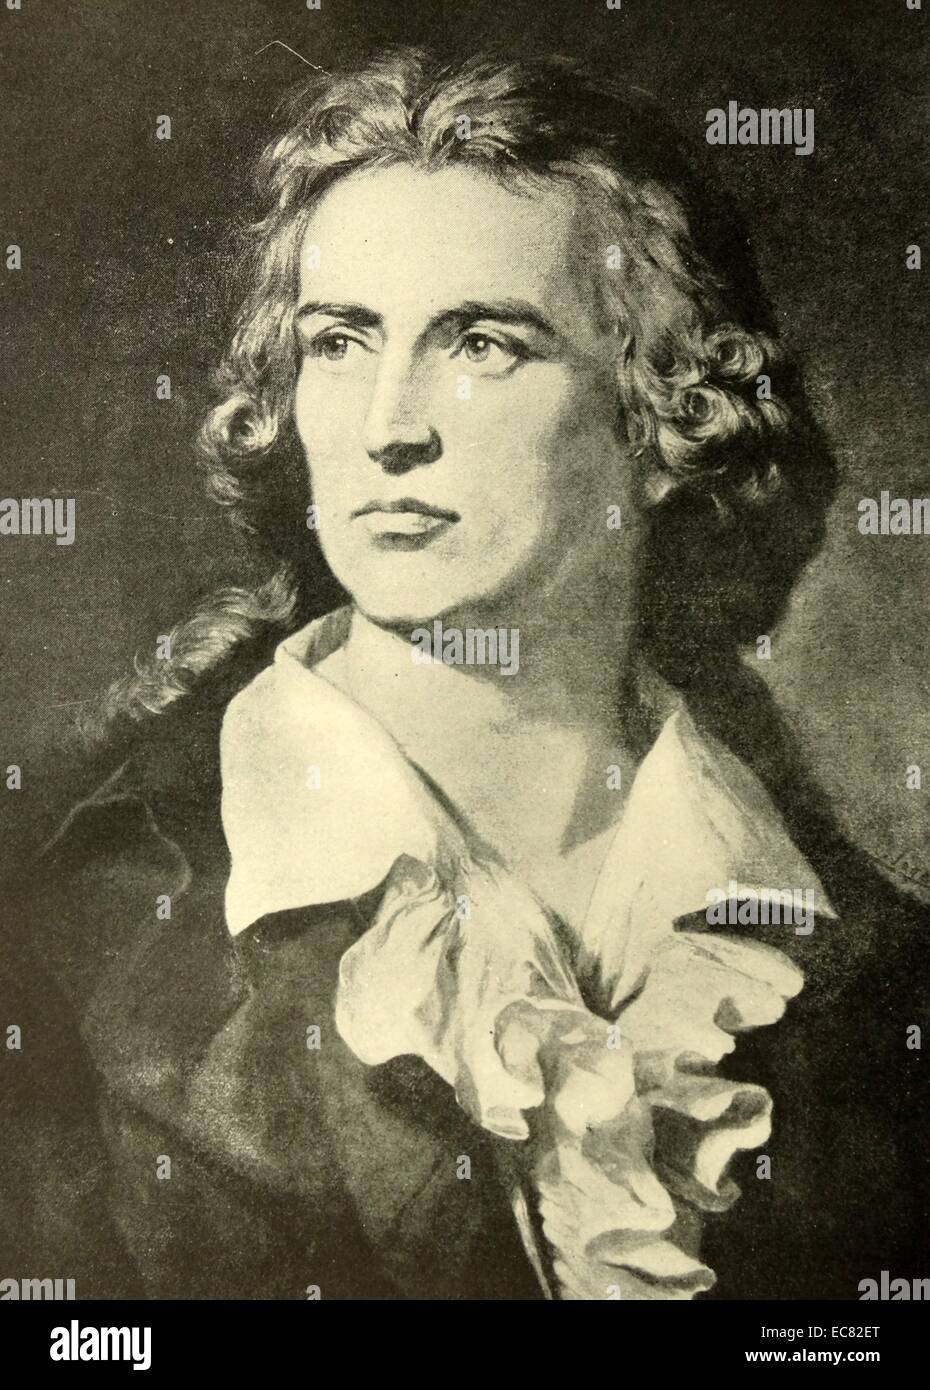 Portrait of Friedrich Schiller (1759-1805) German poet, philosopher, historian, and playwright. Dated 1793 - Stock Image